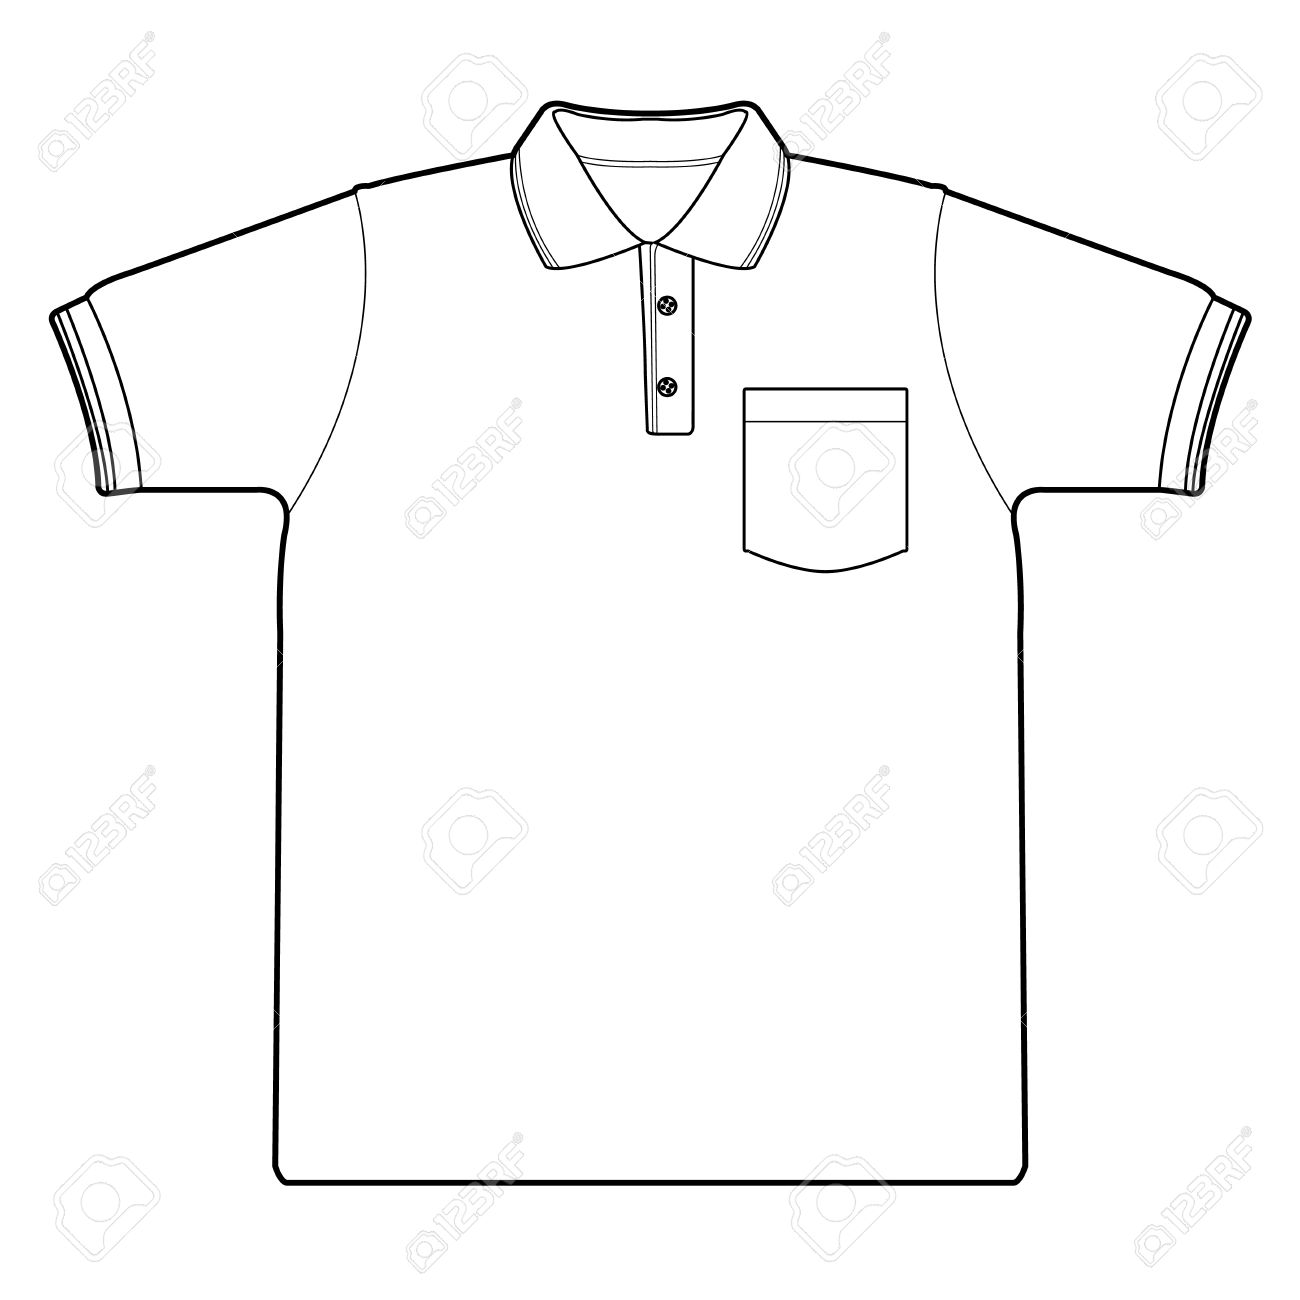 Drawing Of A Shirt